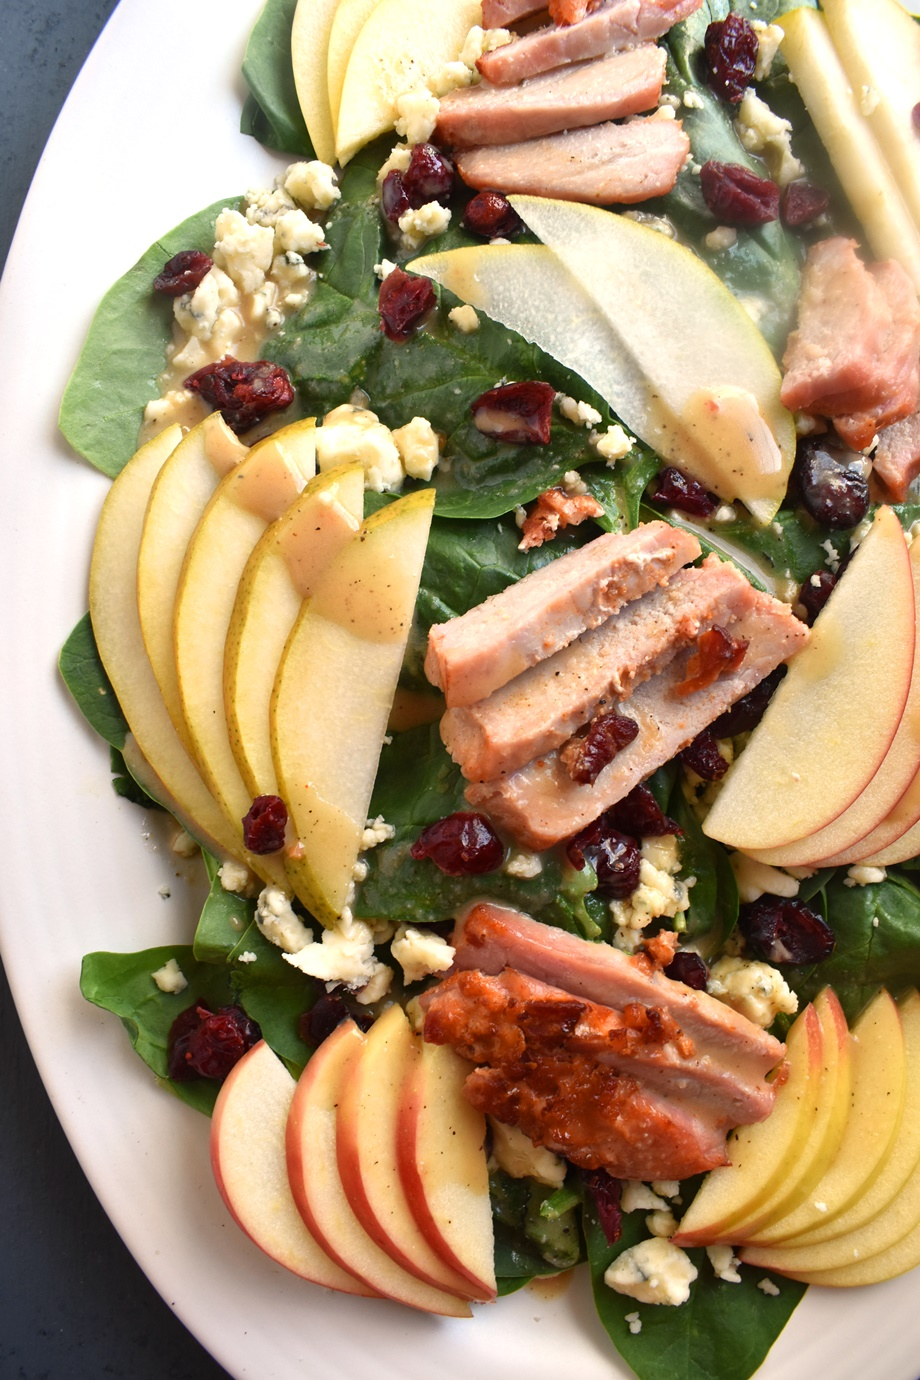 Loaded Pear and Apple Salad features sliced honeycrisp apples, pears, roasted pork tenderloin, cranberries, blue cheese and an easy dijon vinaigrette!